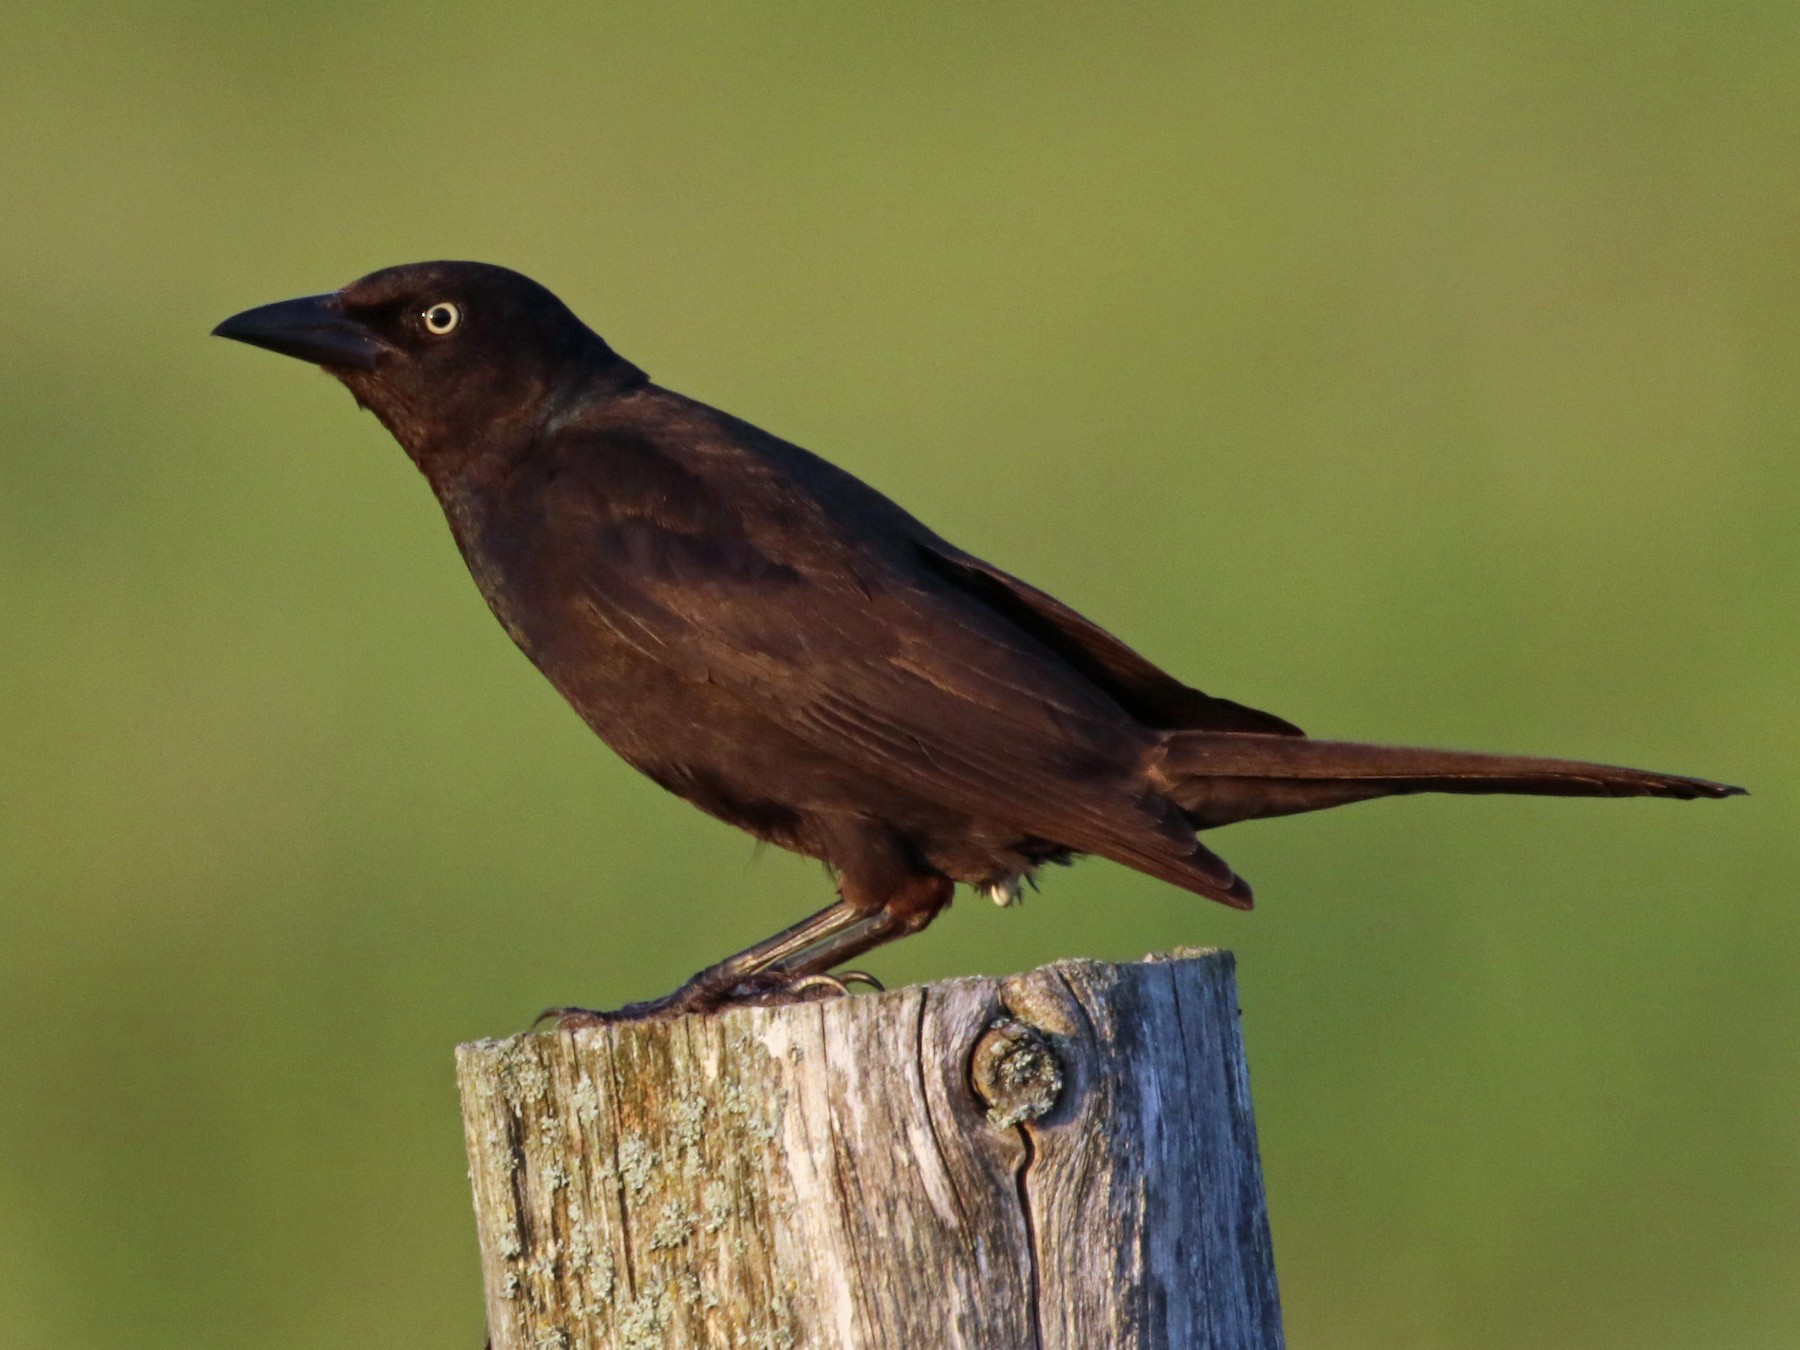 Common Grackle - Ida & Carlos Furtado